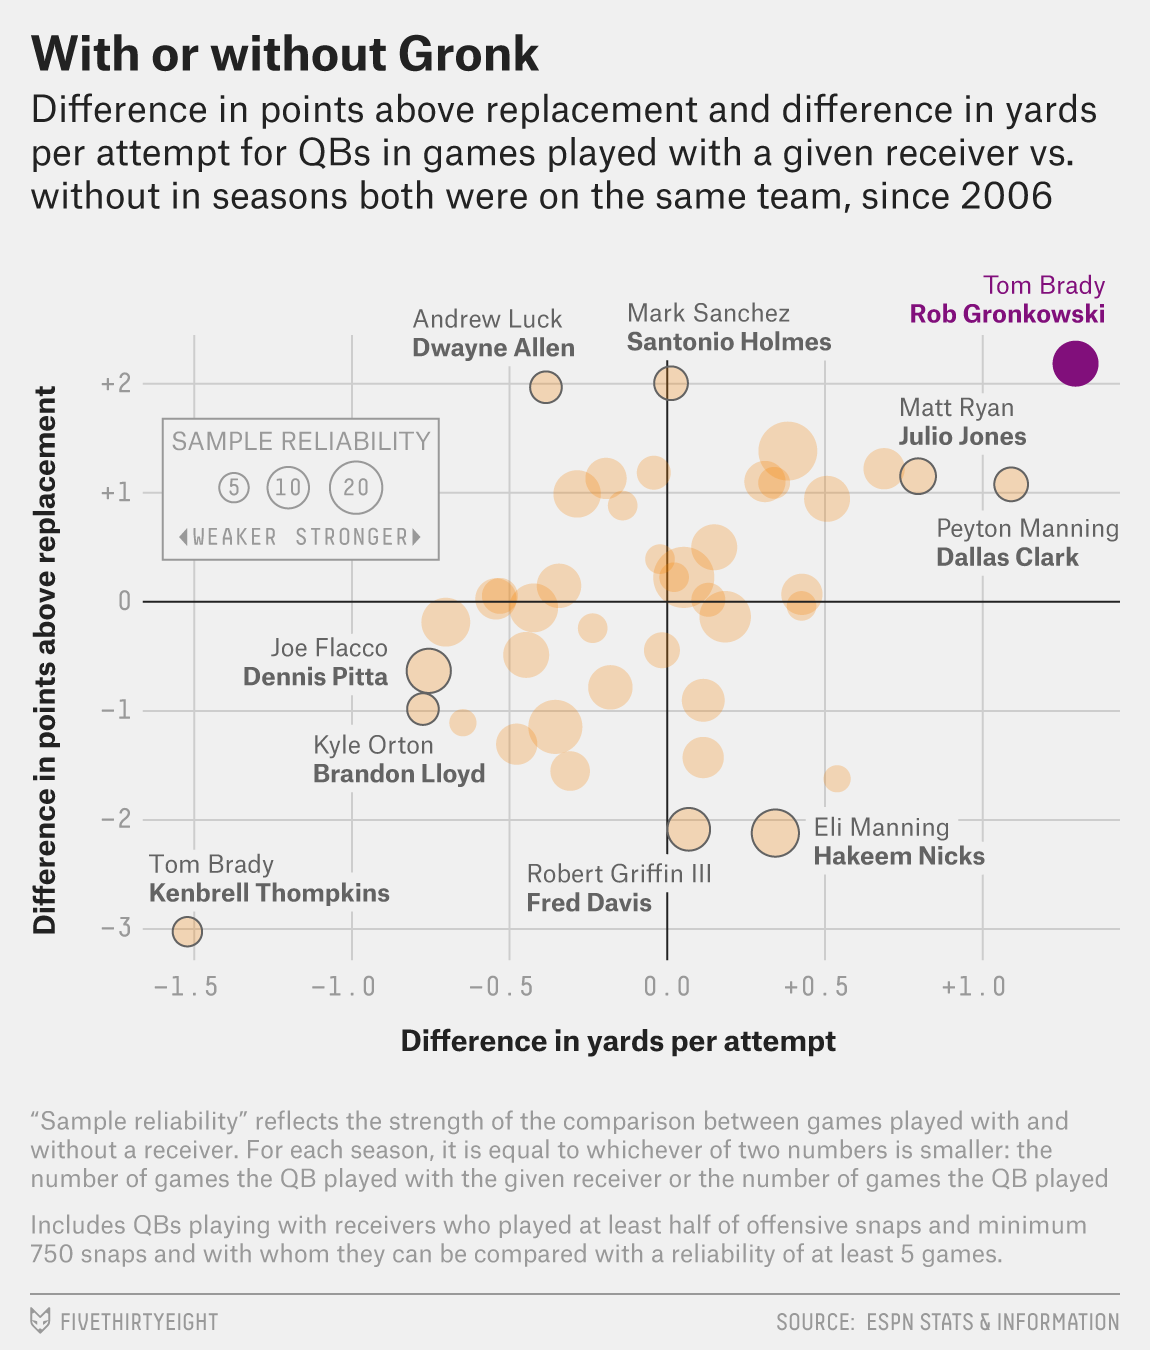 A scatter plot that shows the NFL players' performance, with Rob Gronkowski as a positive outlier